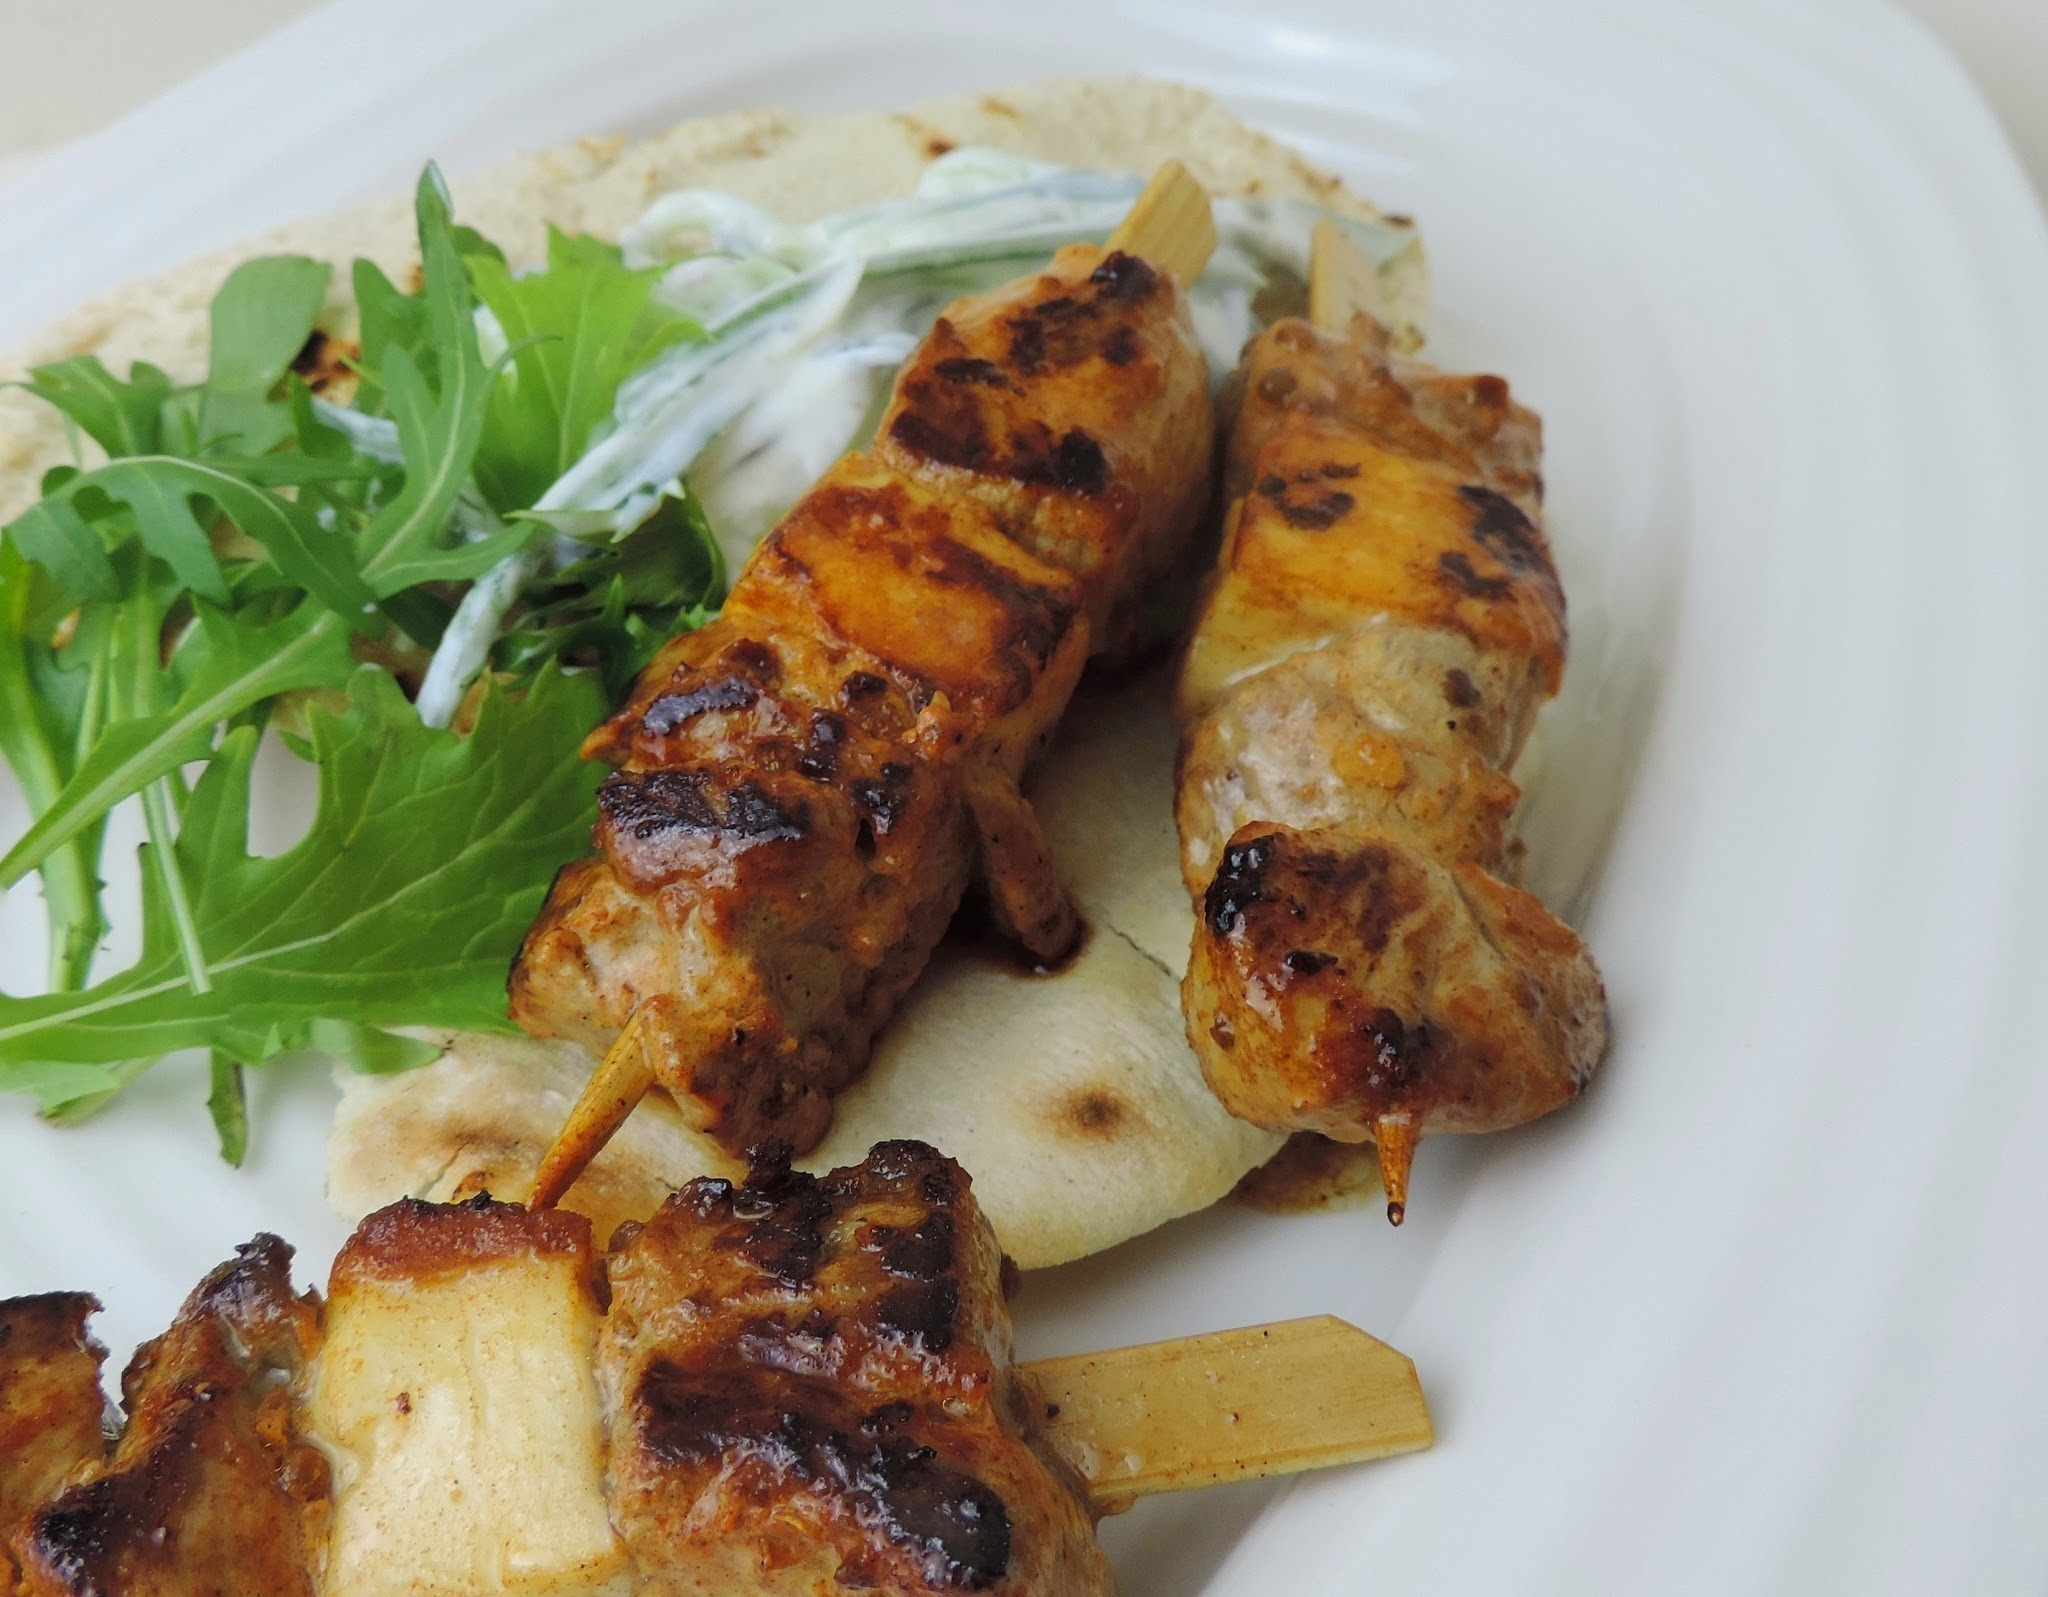 Lamb and Halloumi Kebabs served with shredded Tzatziki